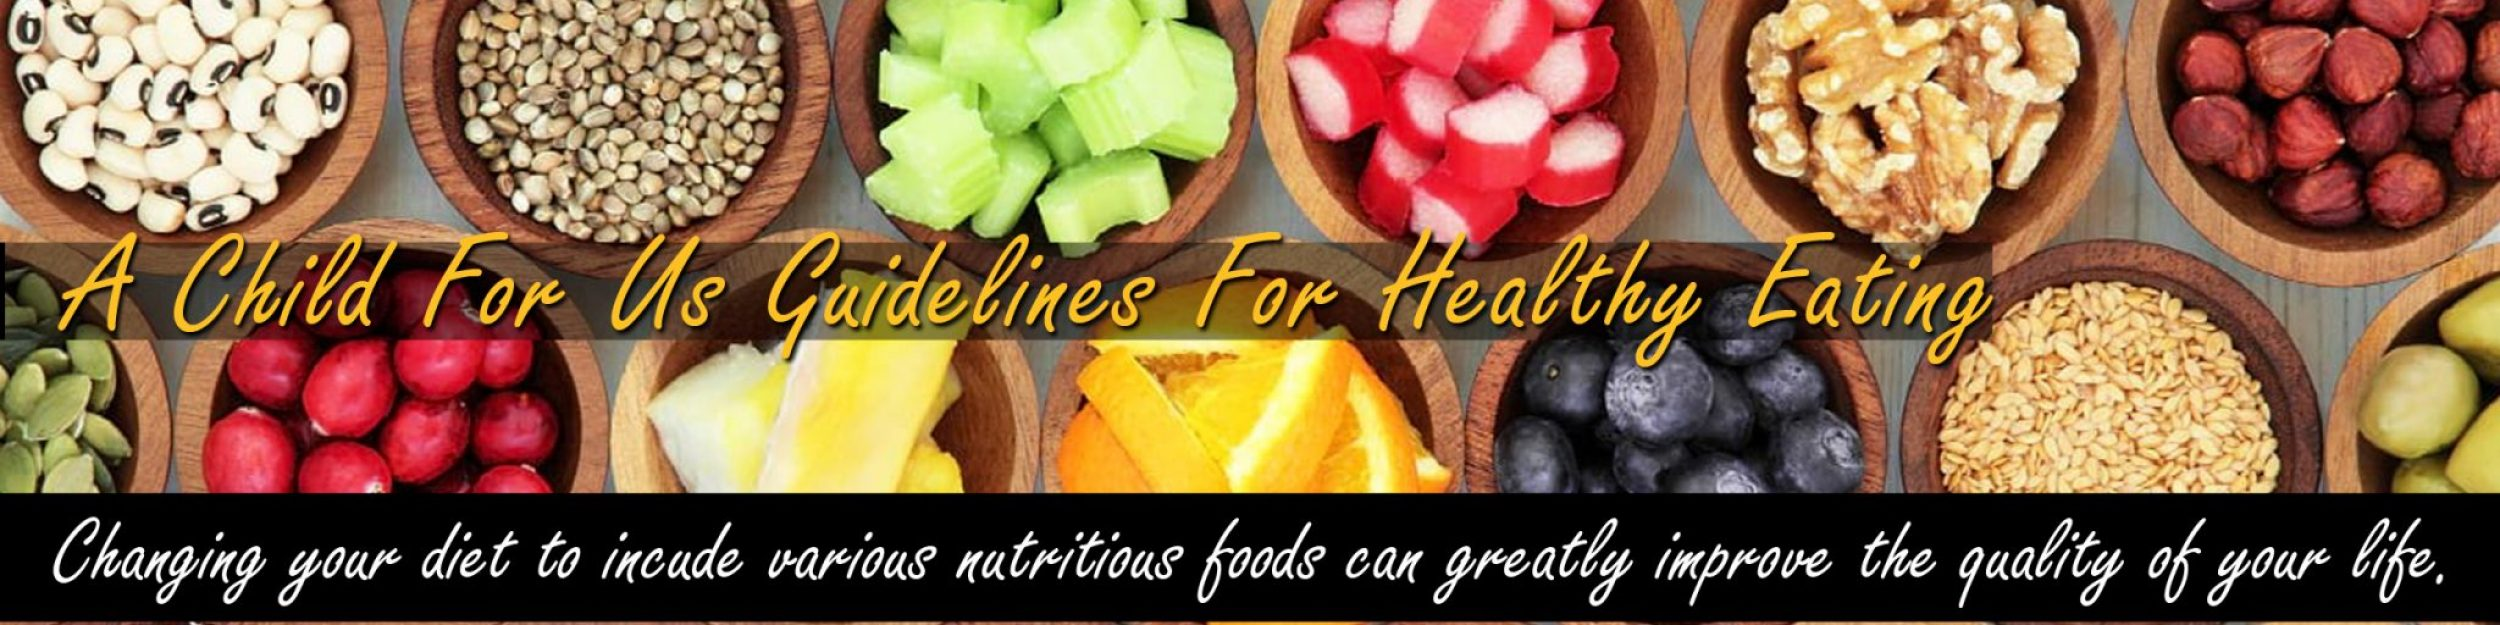 A Child For Us Guidelines For Healthy Eating